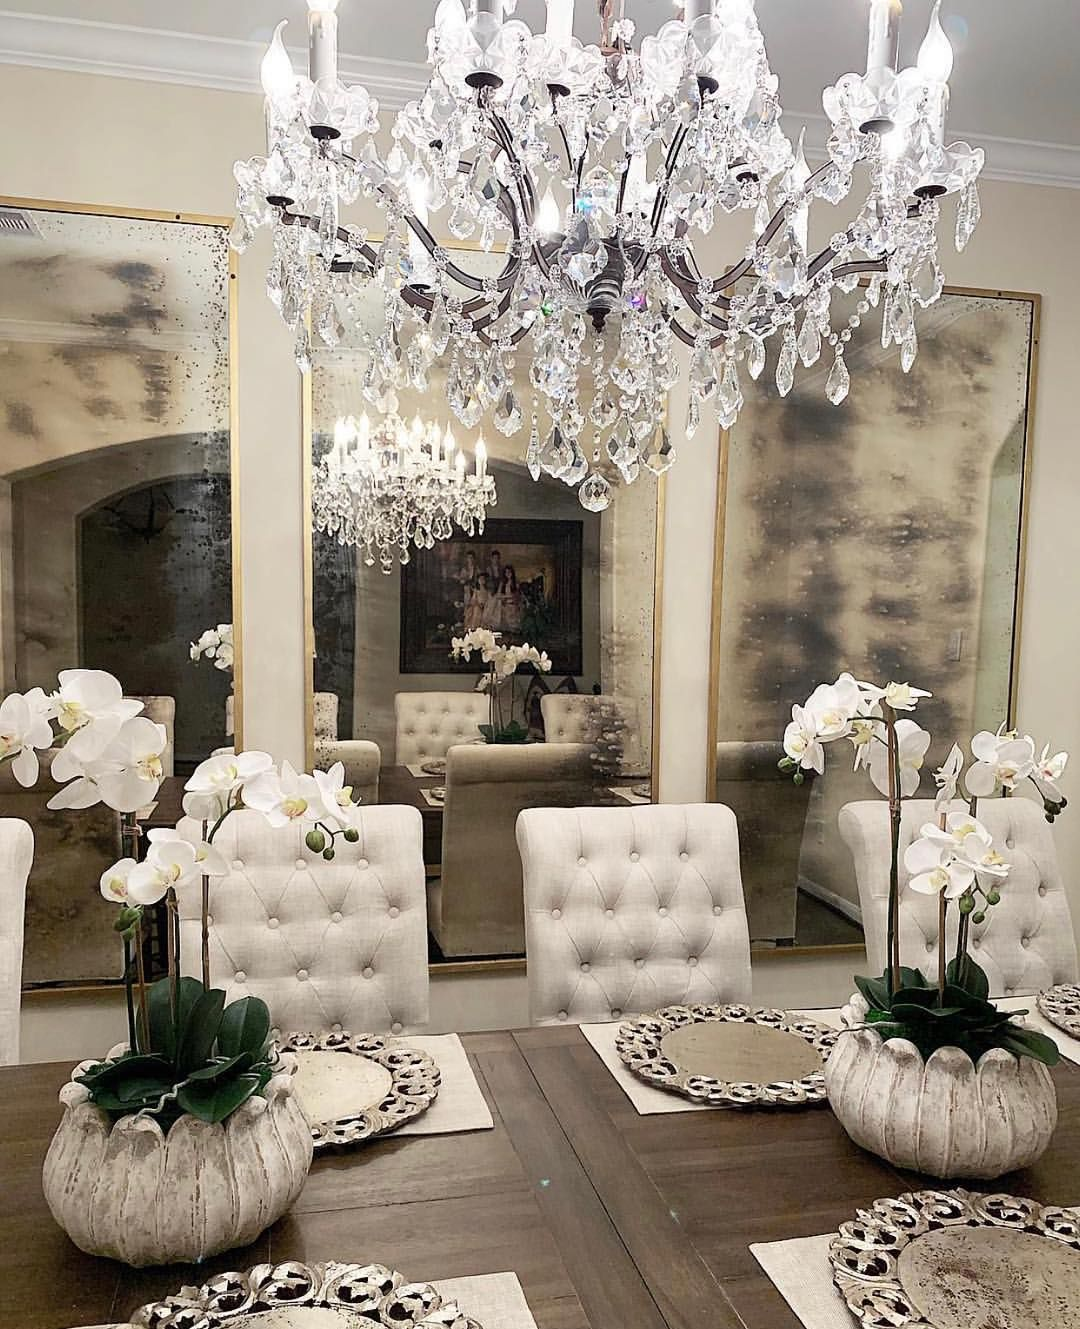 Awesome 28 Beegcom Pinterest Easter Home Decor Ideas In 2020 Bedroom Furniture Brands Home Decor Online Best Outdoor Furniture